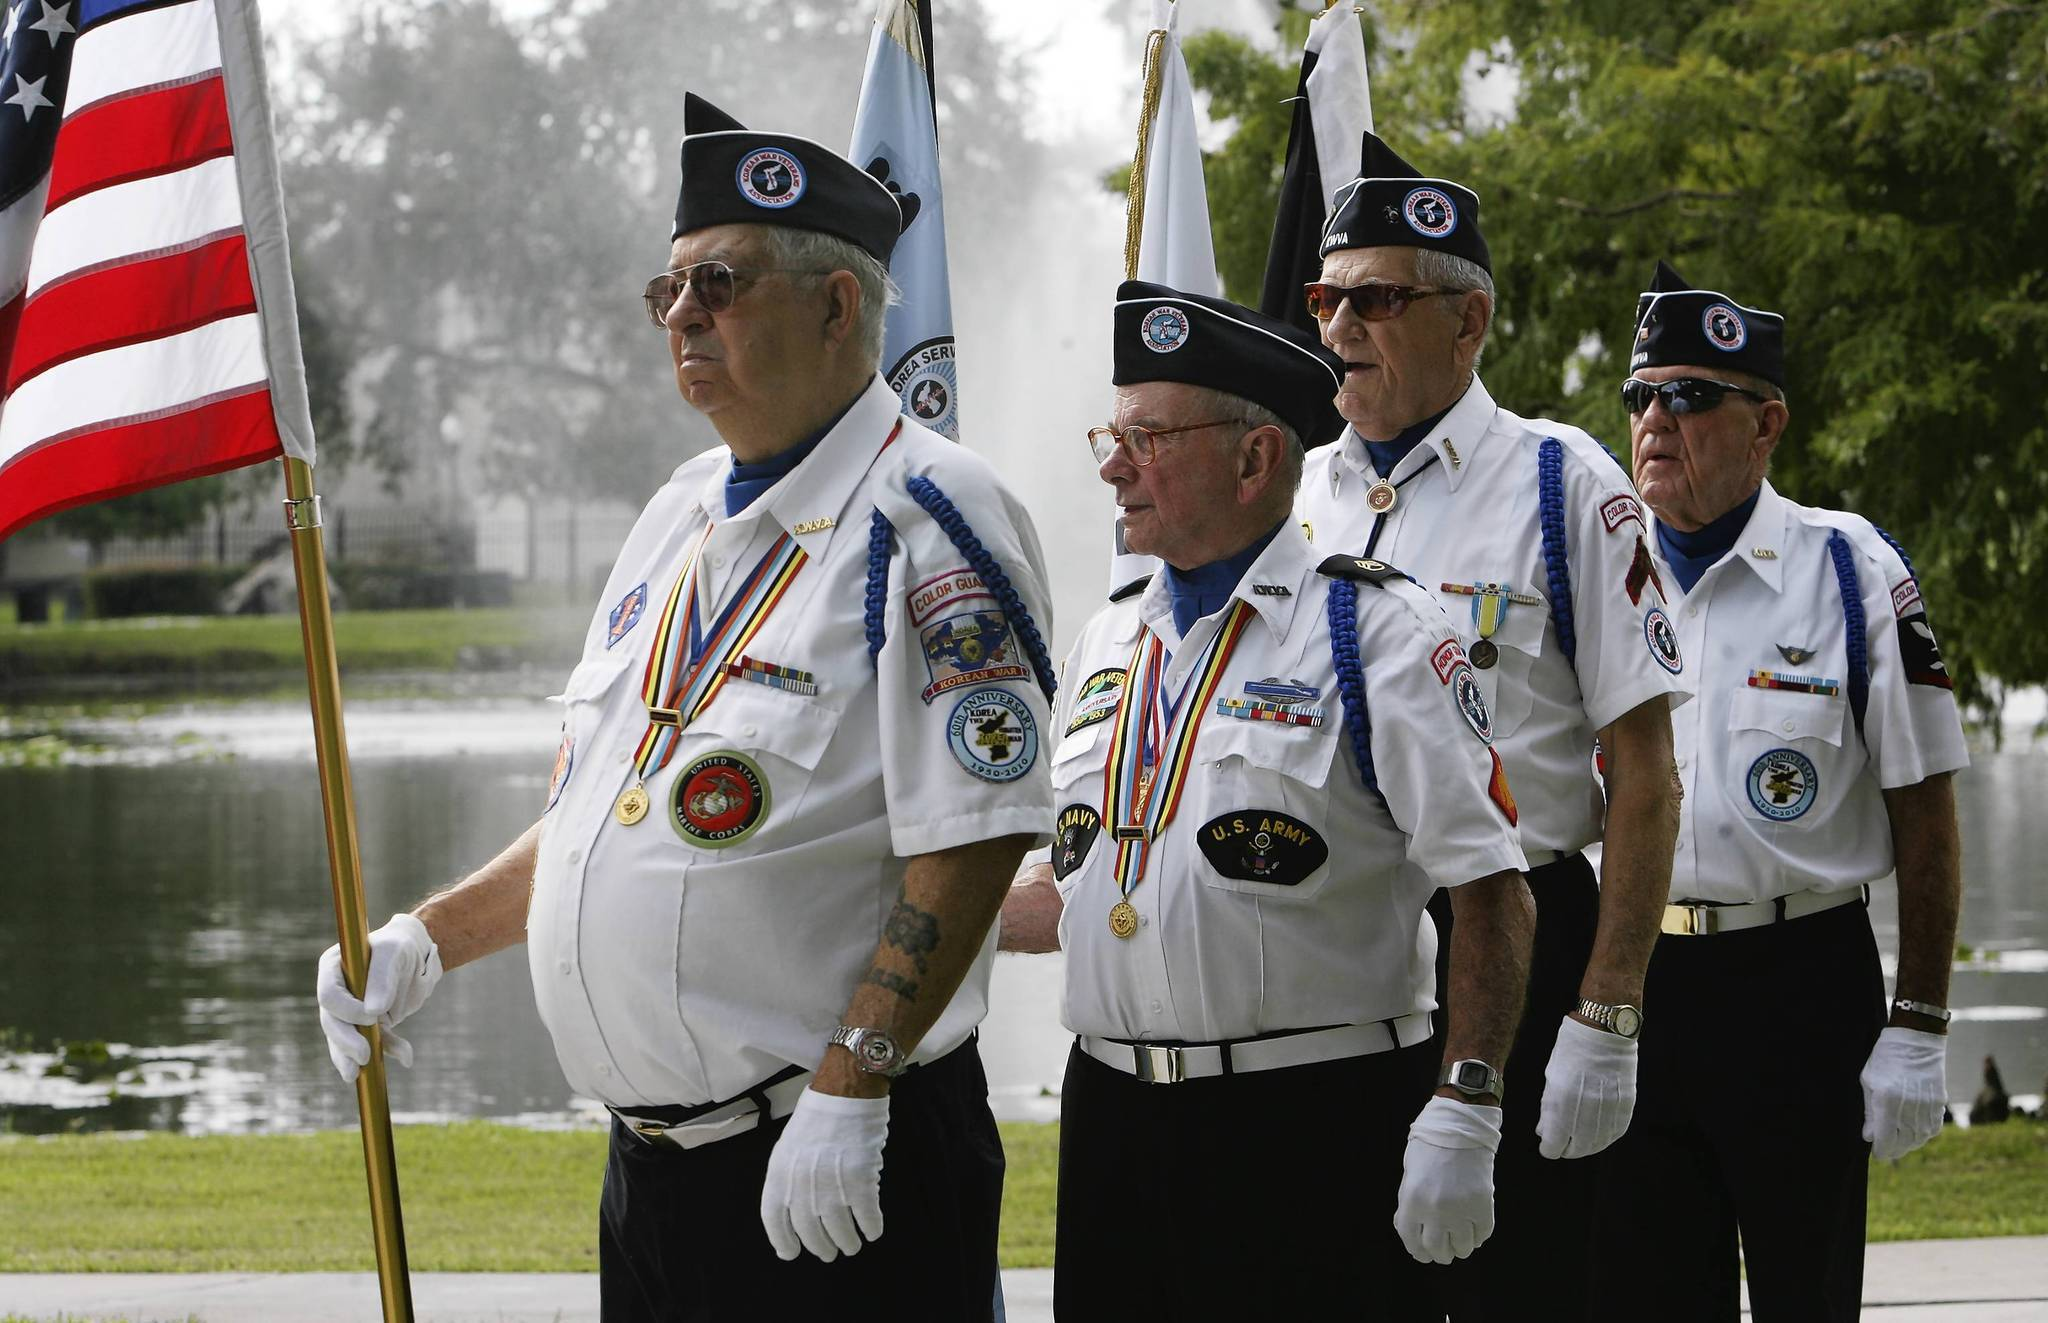 Members of the Color Guard from Korean War and Korean Service Veterans of lake County, post Colors at Veterans Memorial at Fountain Park in Leesbur, Fl. ,during a ceremony on  Friday, marking the 59th anniversary of the end of the Korean War when communist and United Nations representatives signed the cease-fire agreement at Panmunjom, ending three years of fighting. (Tom Benitez/Orlando Sentinel)